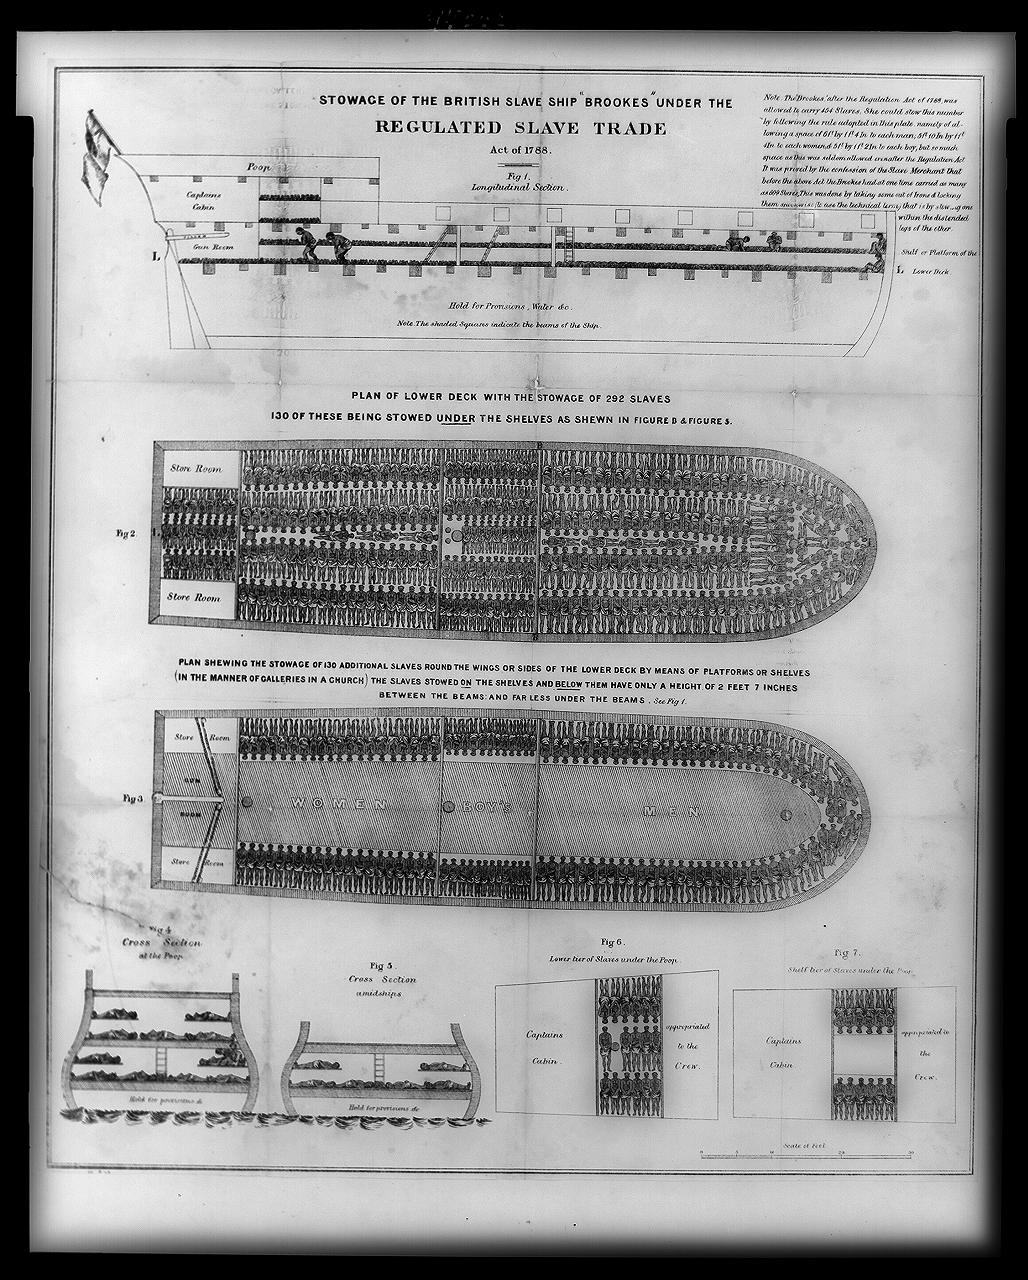 Stowage of the British slave ship